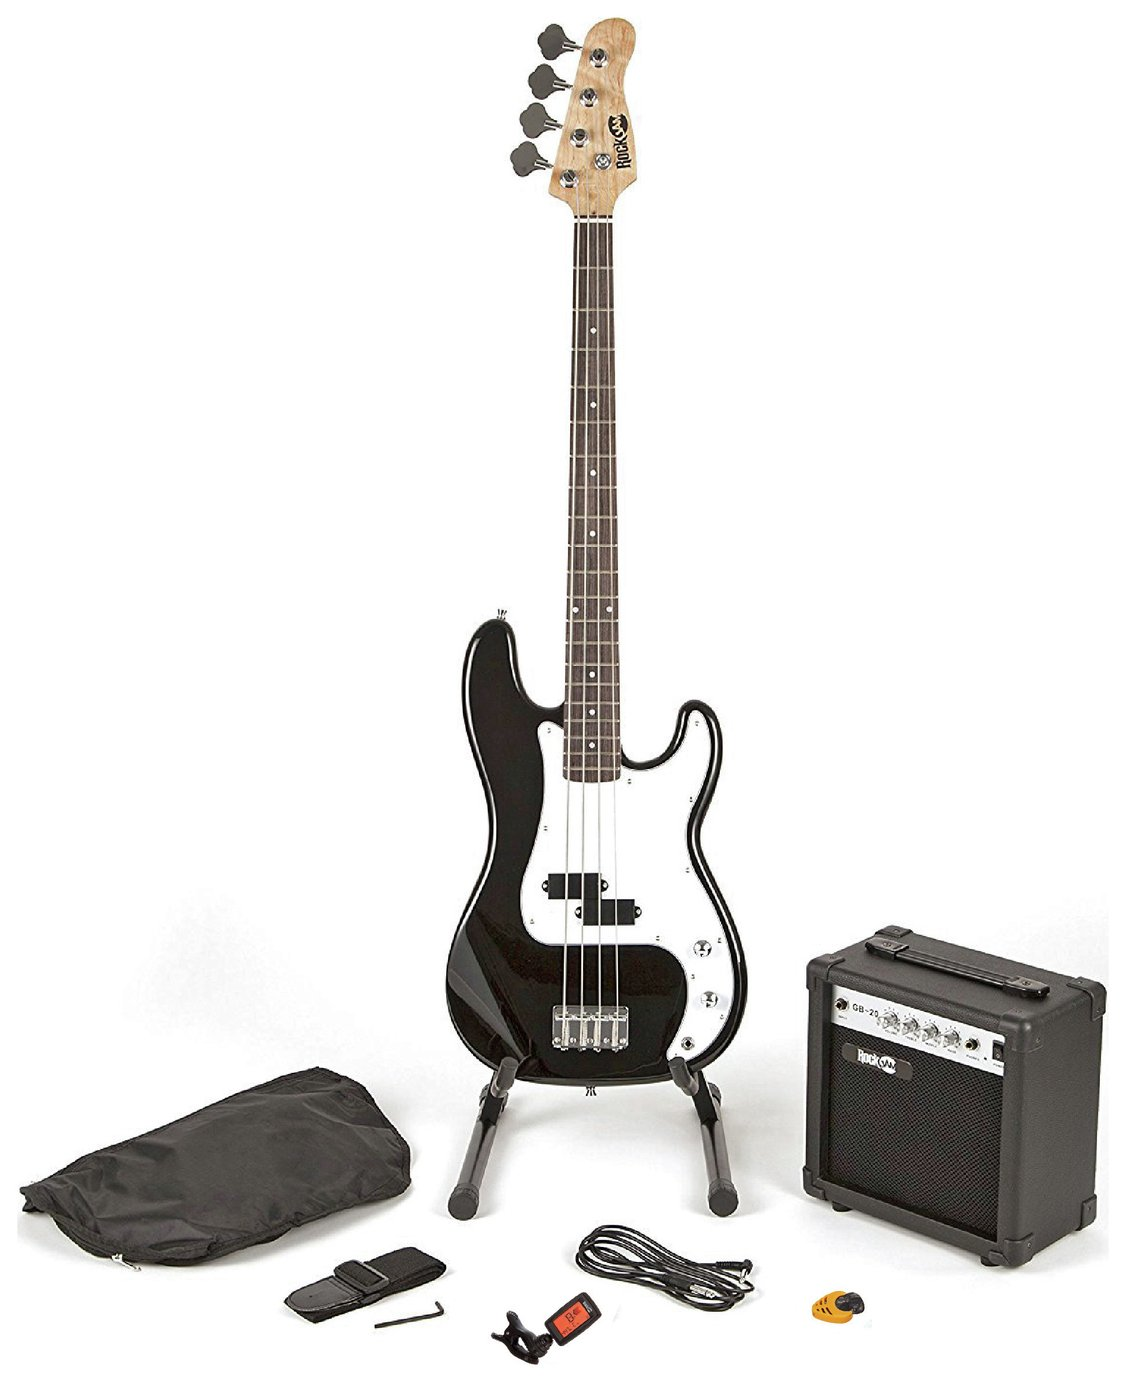 RockJam Electric Bass Guitar Kit With Amp & Tuner - Black